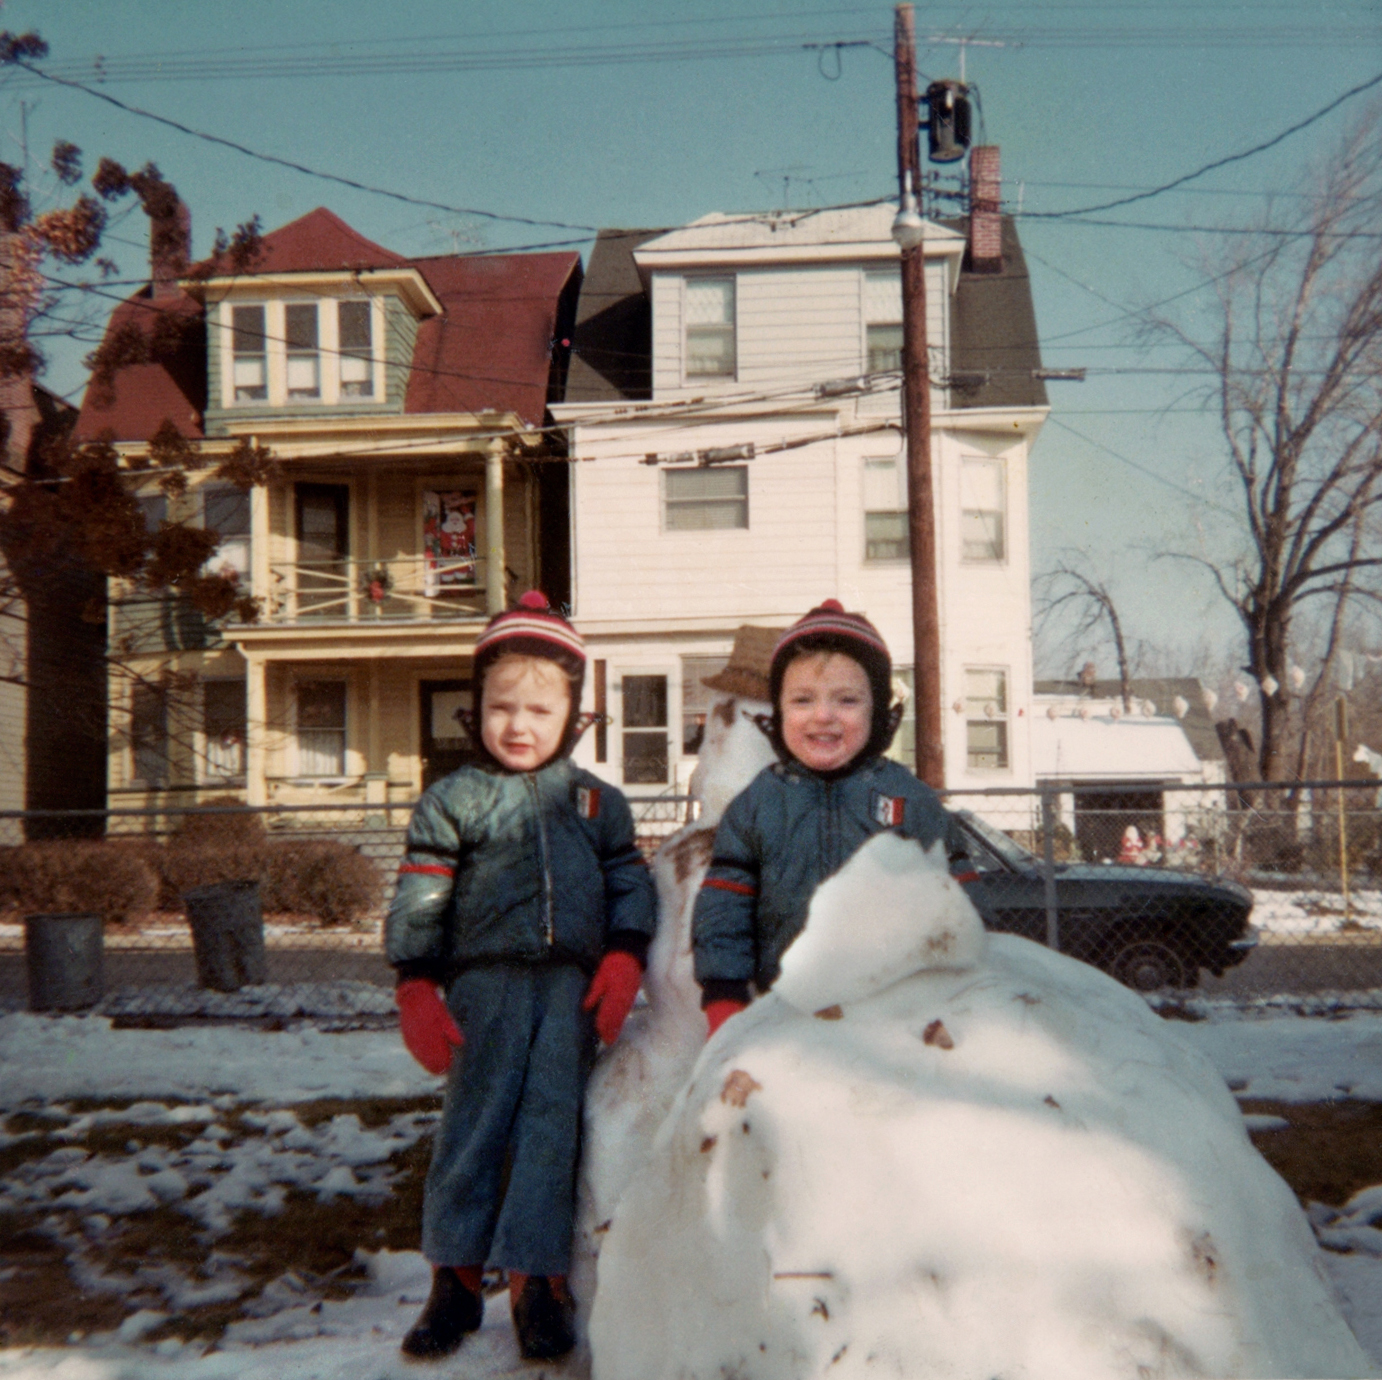 Mark and Scott building a snowman  in West Orange, N.J in Dec. 1966.